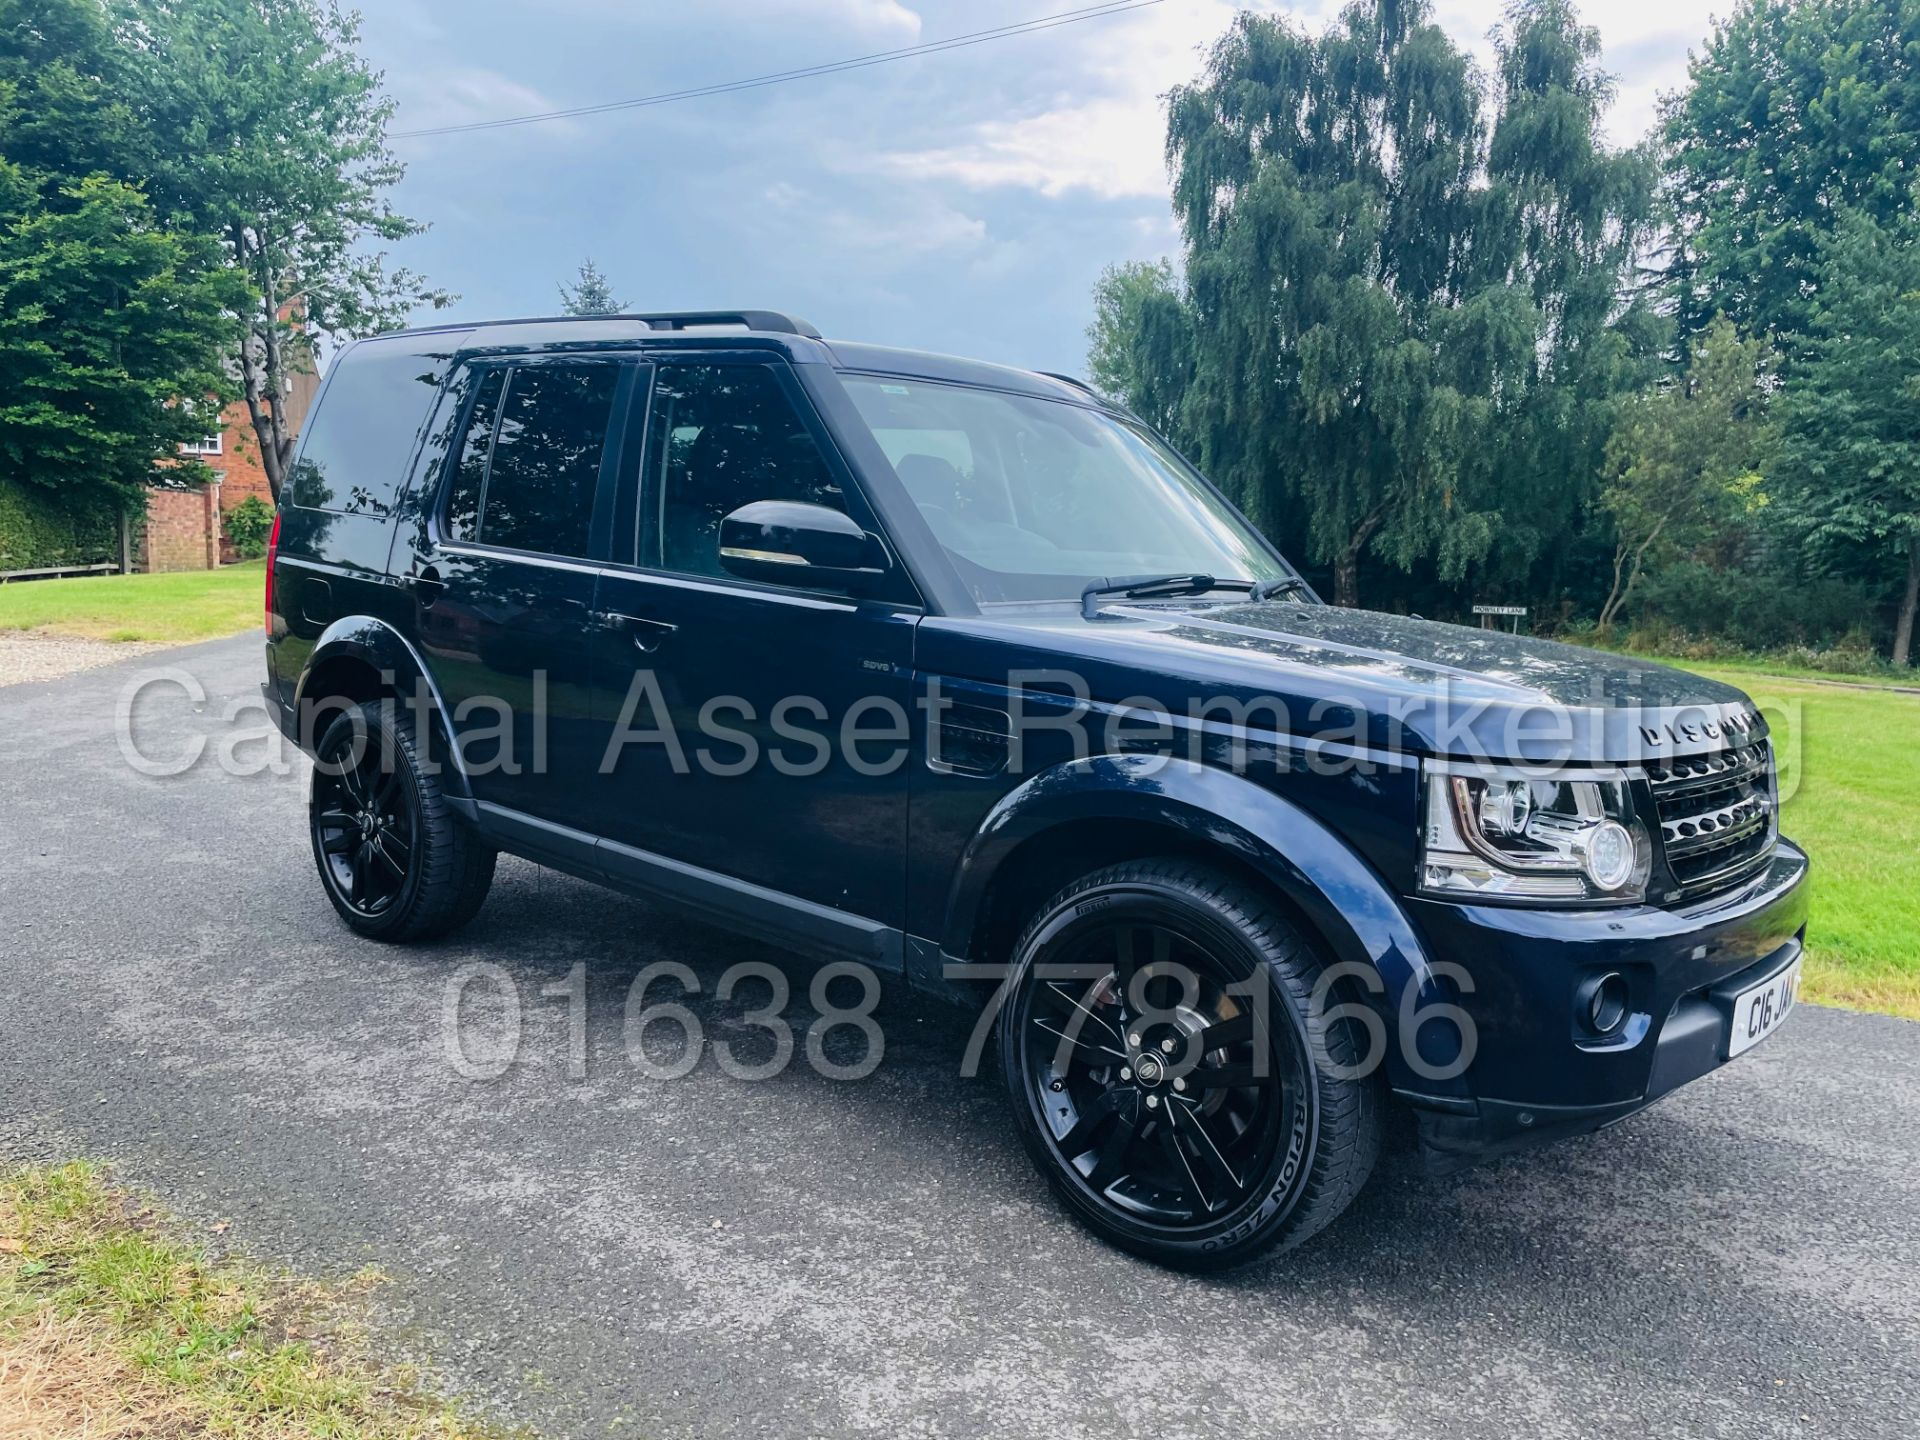 LAND ROVER DISCOVERY 4 *HSE* 7 SEATER SUV (2014 - NEW MODEL) '3.0 SDV6 - 255 BHP - 8 SPEED AUTO' - Image 12 of 61